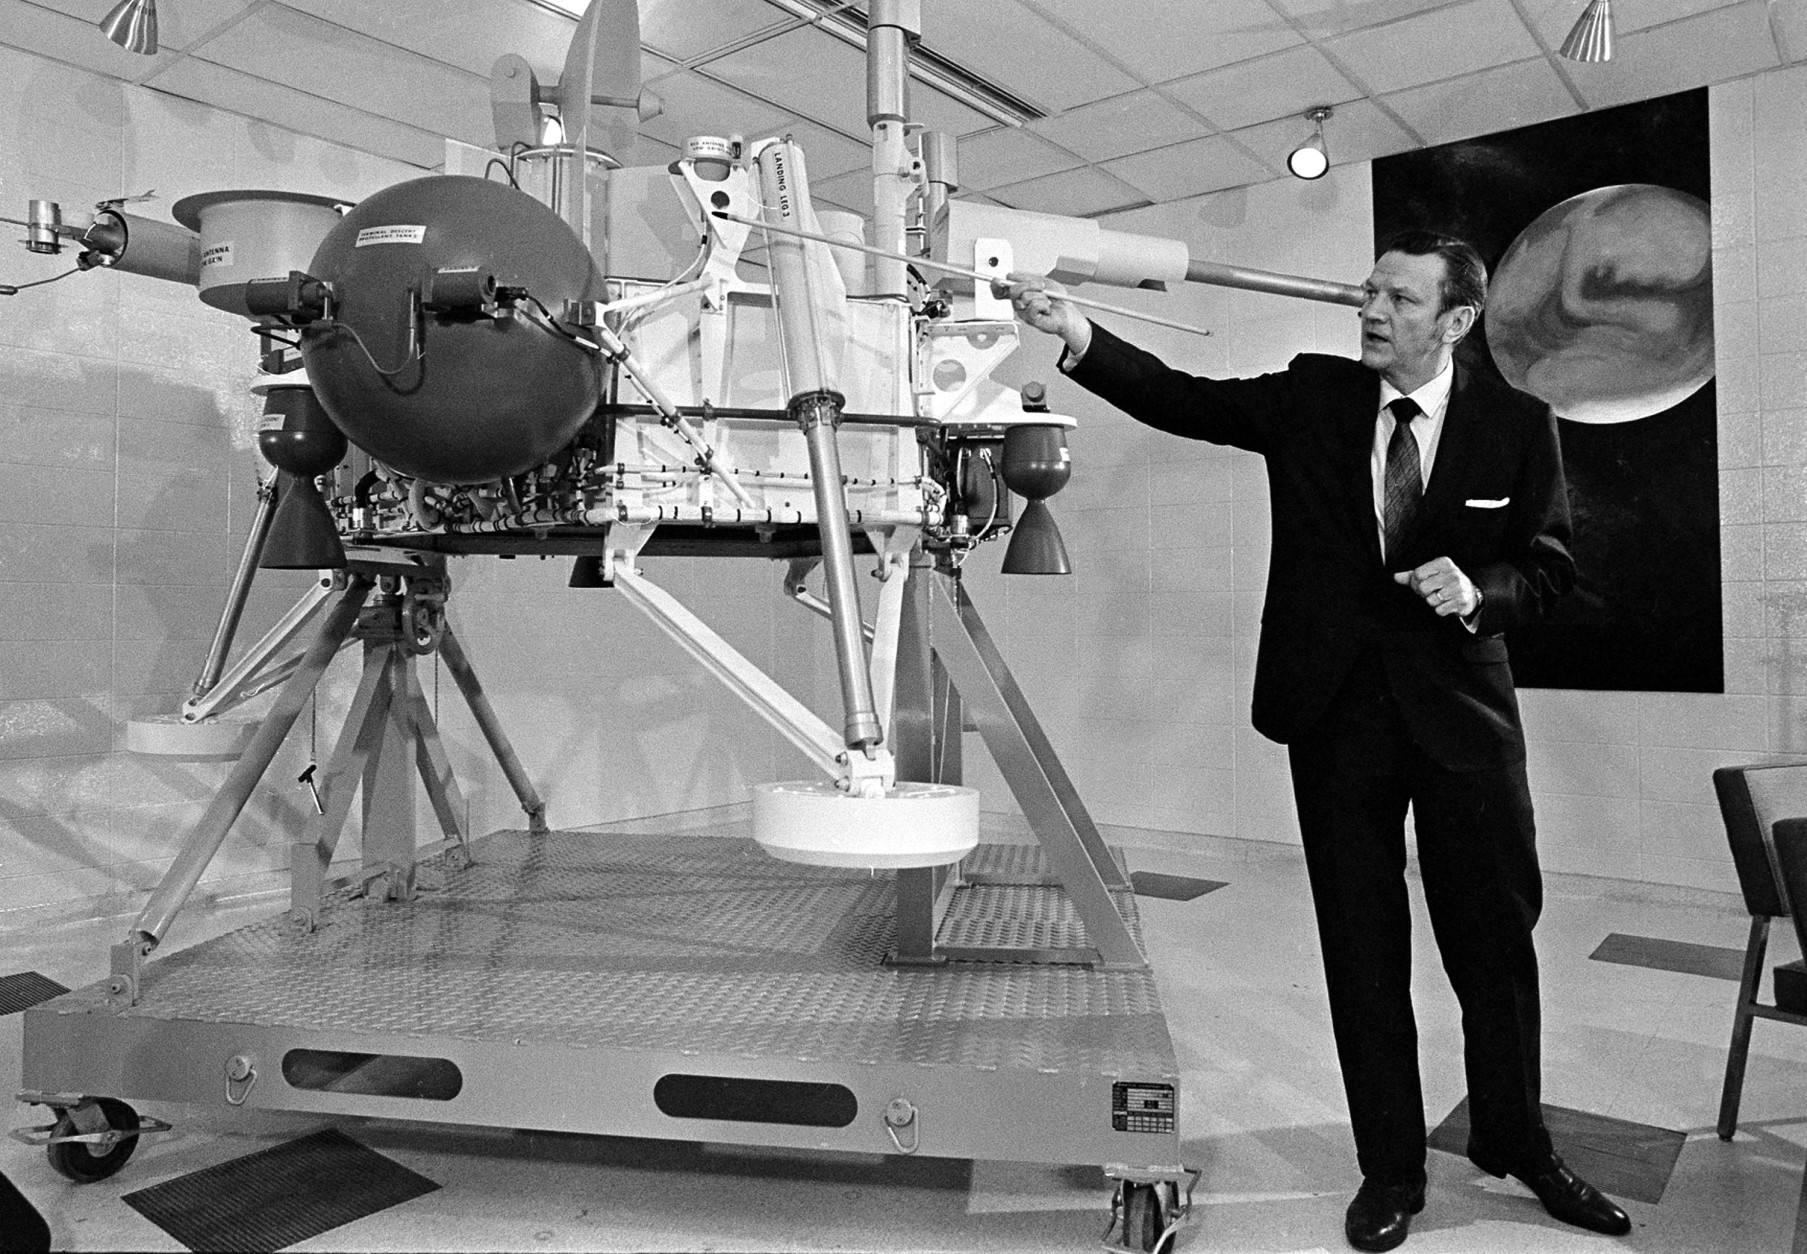 Viking project director Albert J. Kullas explains the full scale model of the lander after it was unveiled during a news briefing at the Martin Marietta space center in Denver, Colo., Feb. 11, 1971.  Viking will travel nearly a year and some 460-million miles before reaching Mars in mid-1976.  (AP Photo)